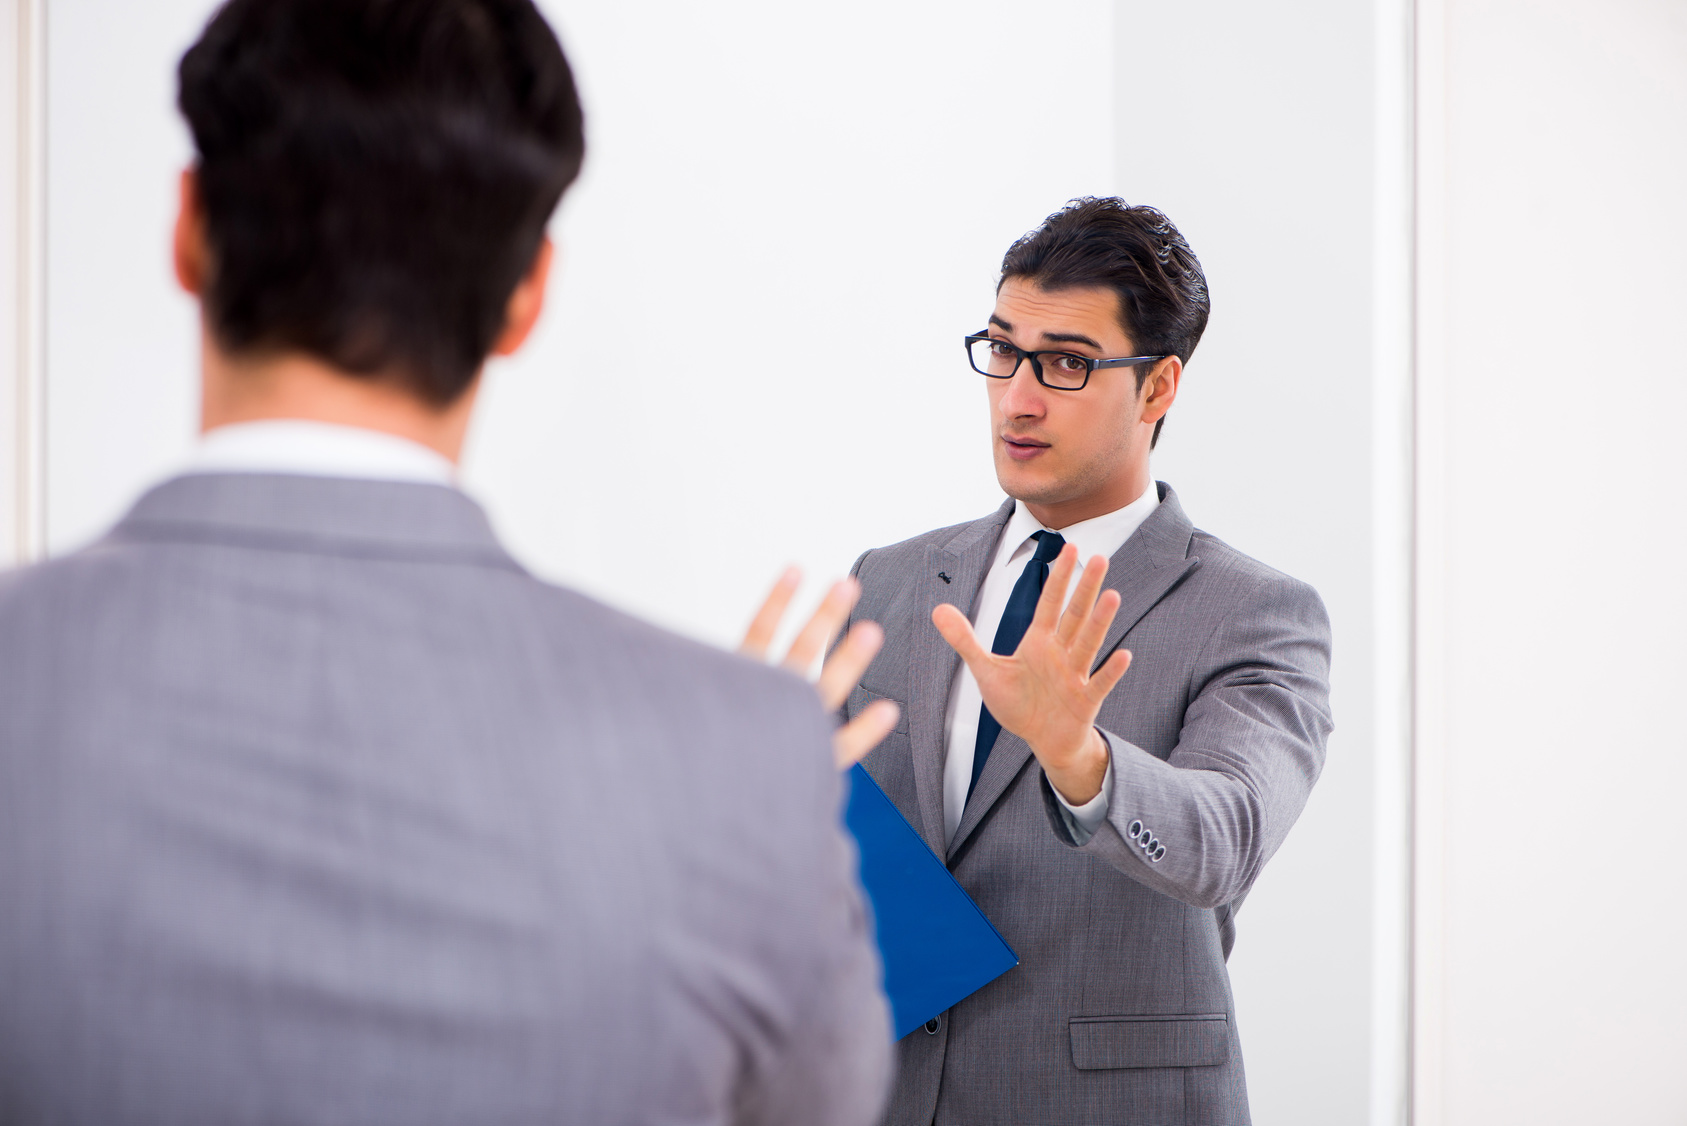 10 Ways To Practice Your Pitch Presentation When Seeking